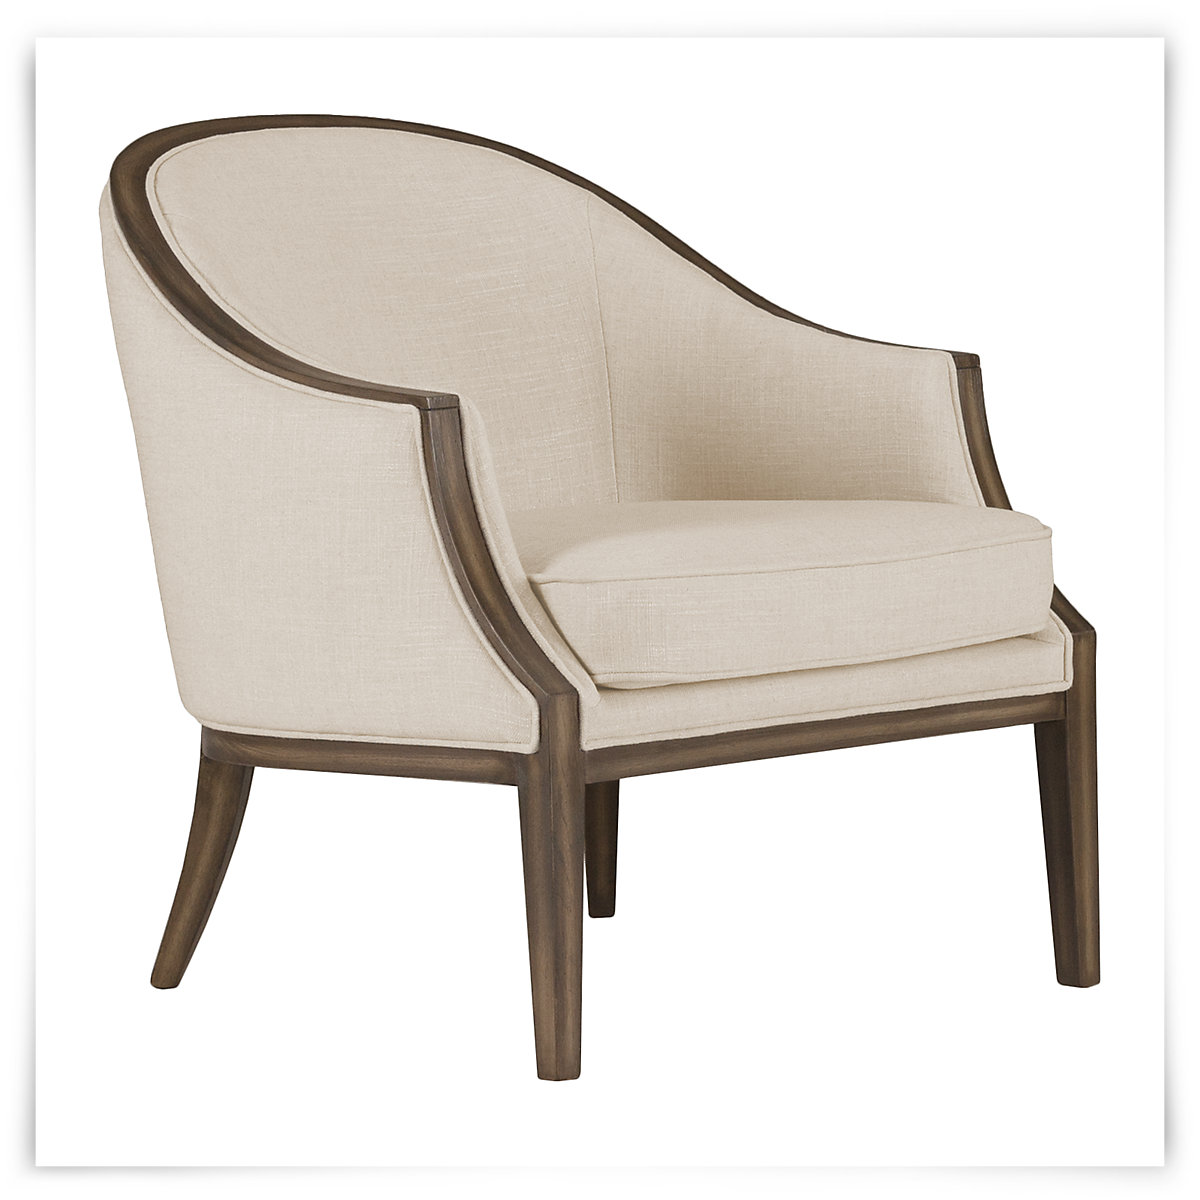 City furniture kensie beige fabric accent chair for Furniture chairs